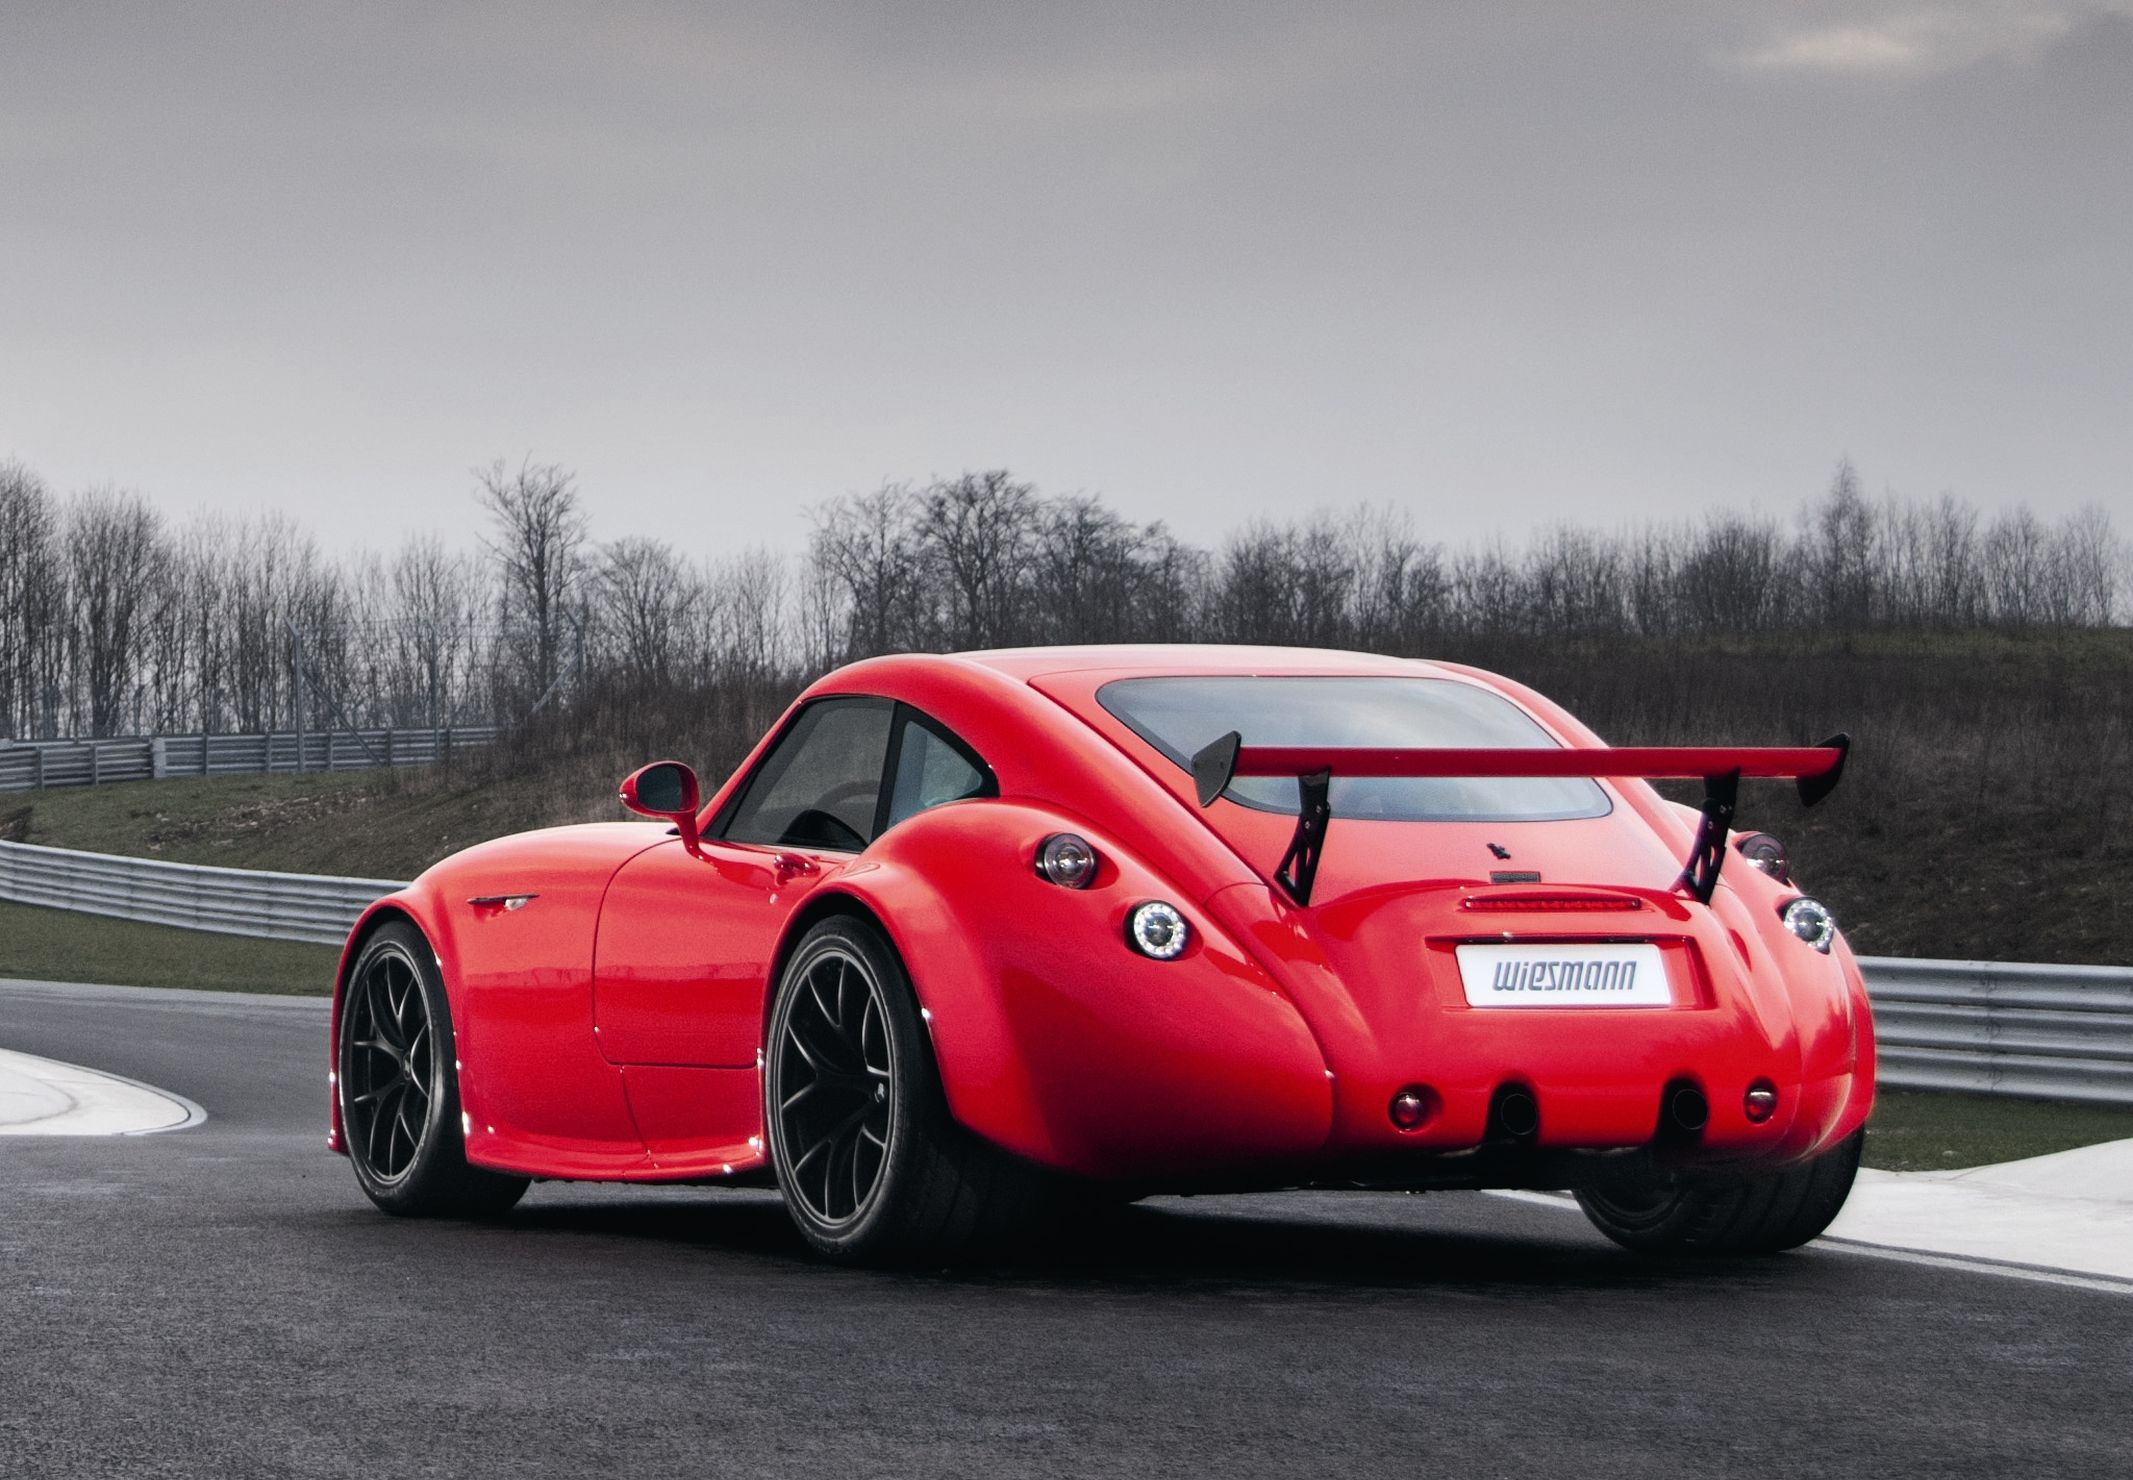 2133x1480 - Wiesmann GT MF4 Wallpapers 18